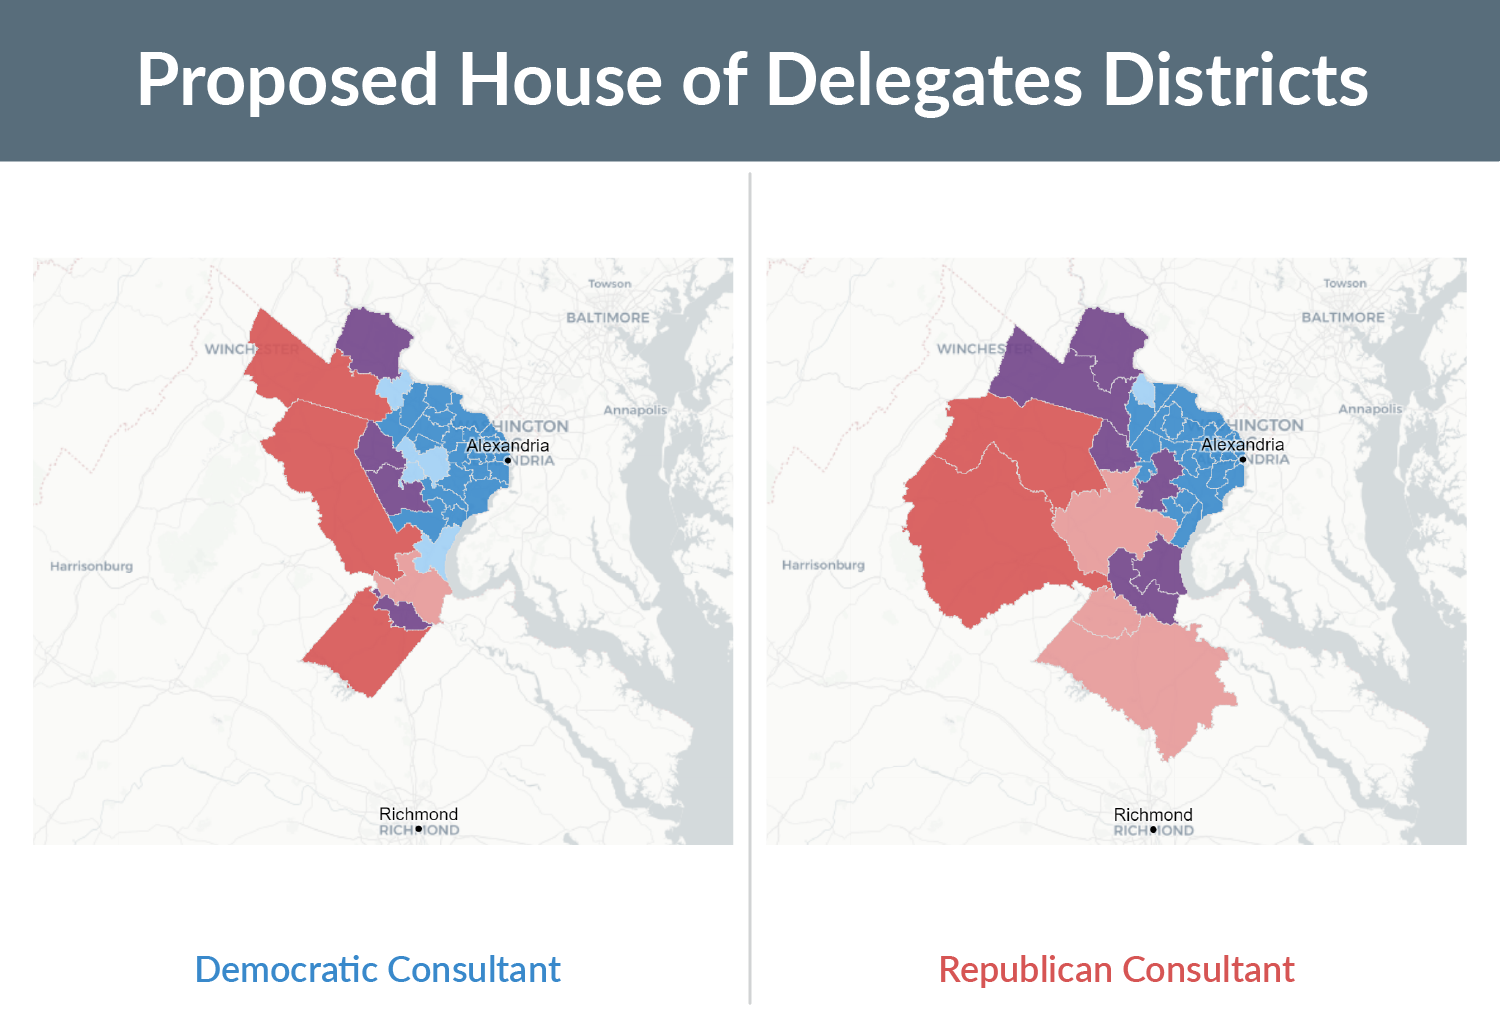 Two maps showing the proposed House of Delegates districts and political lean drawn by the Virginia Redistricting Commission's Democratic and Republican consultants. Strong Democratic is shown in dark blue, Leans Republican is shown in light red, and Strong Republican is shown in dark red.